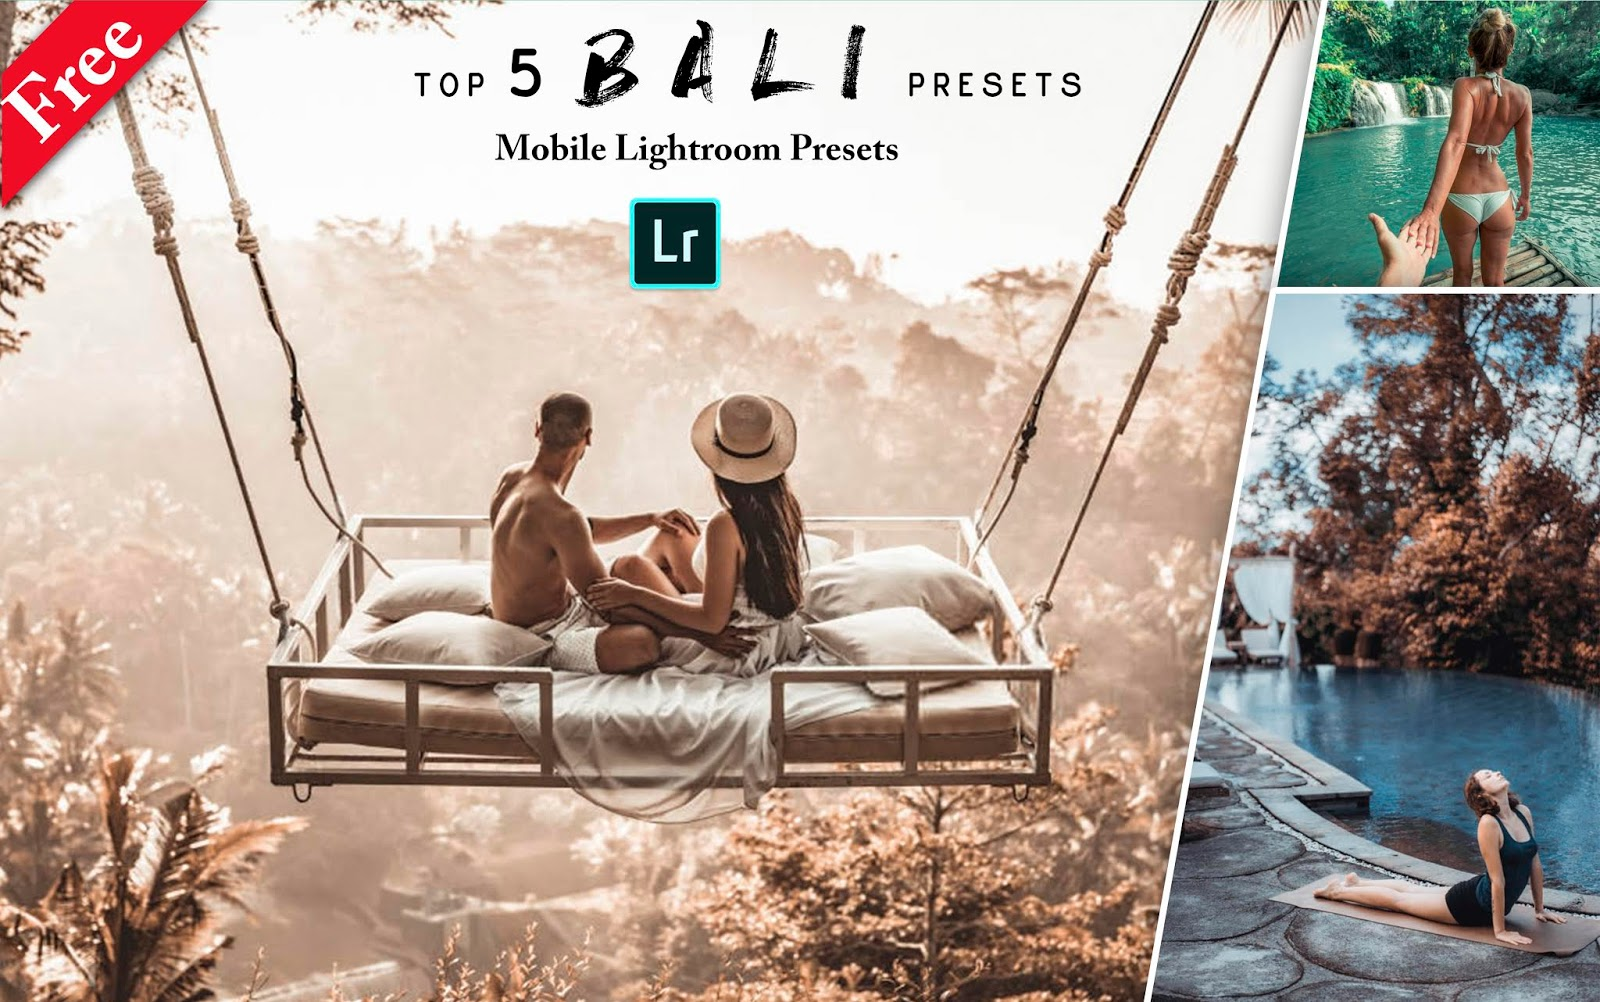 Download Top 5 Bali Mobile Lightroom Preset for Free | How to Edit Your Travel Photos in Mobile Lightroom App